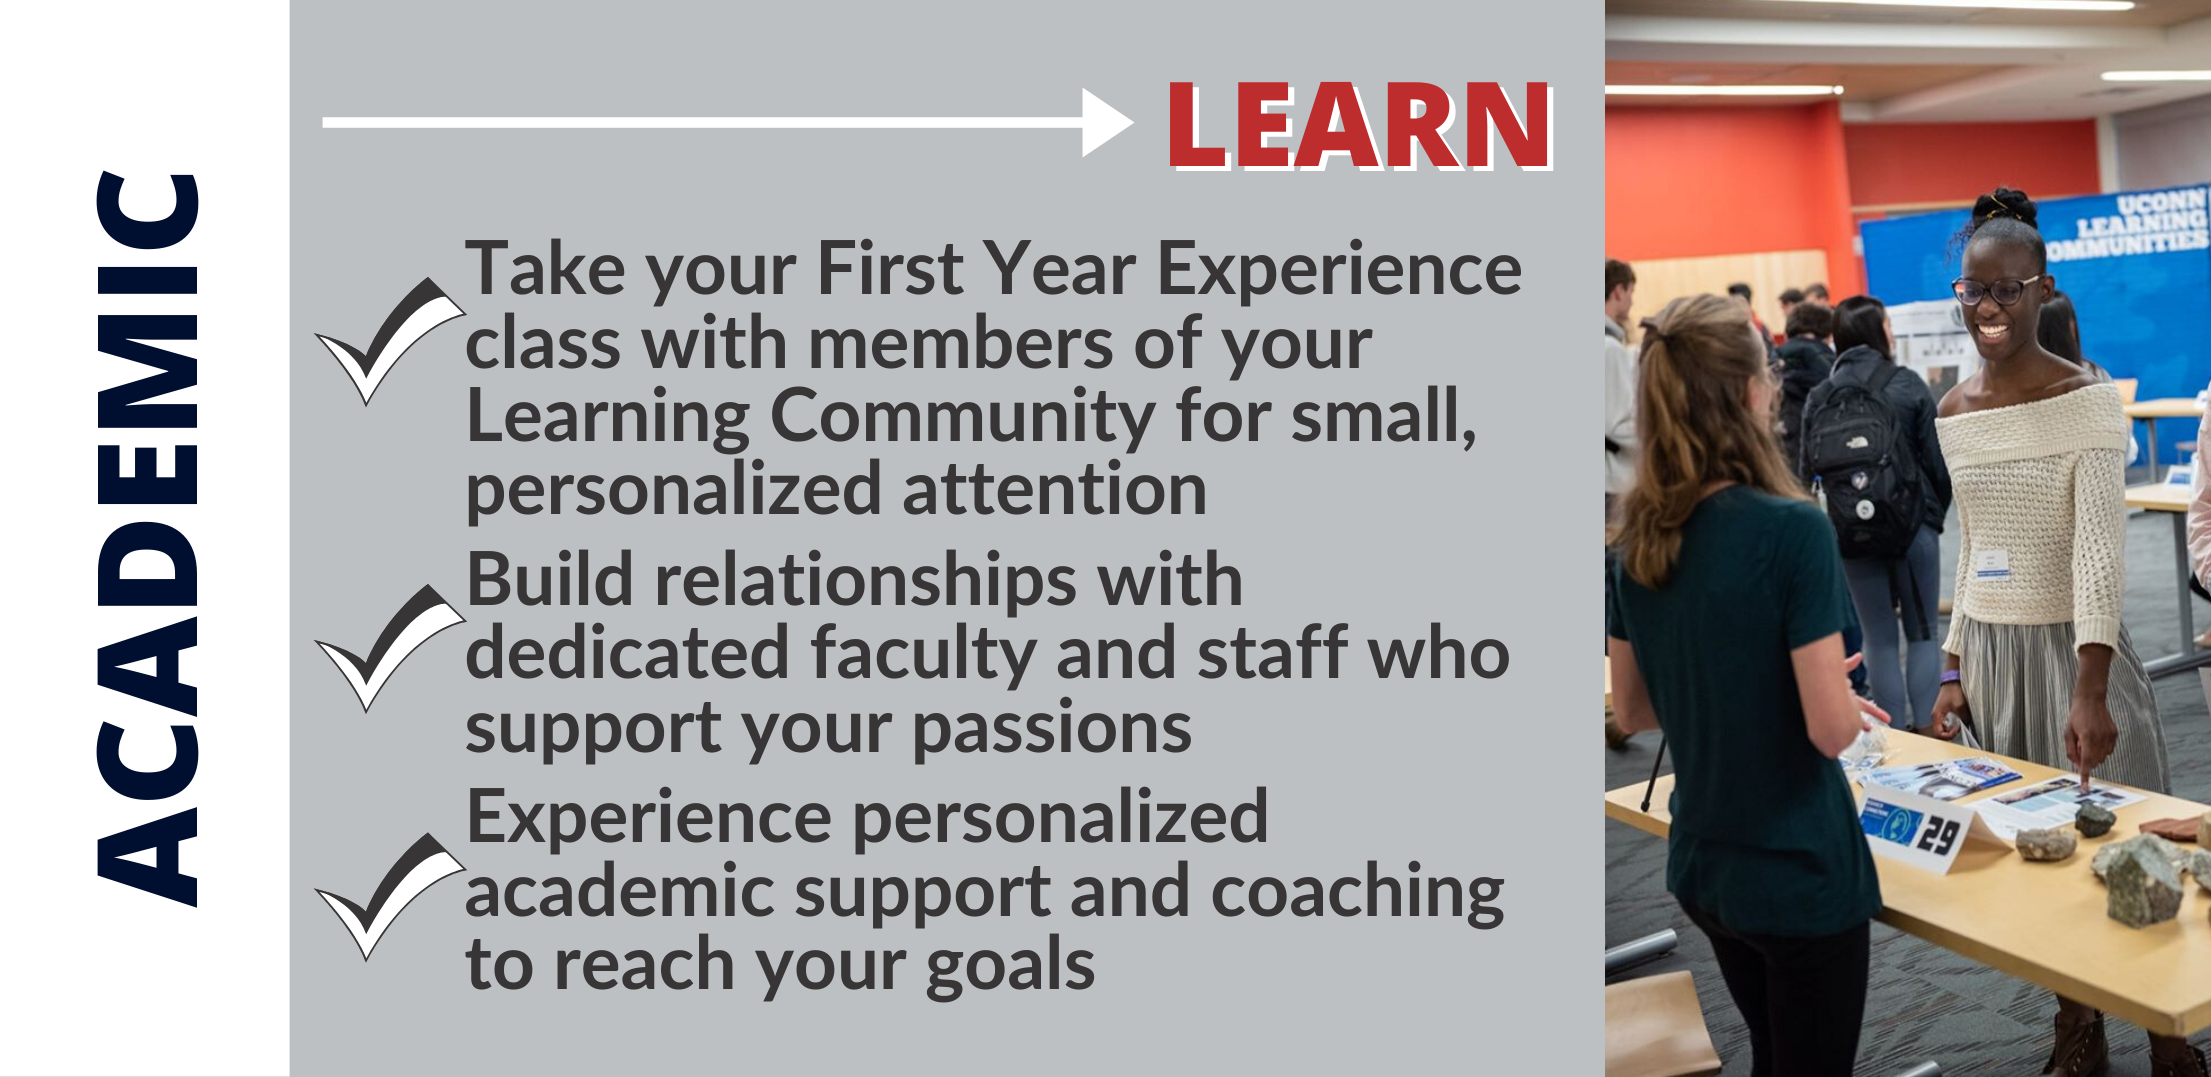 LEARN: Take your First Year Experience class with members of your Learning Community for small, personalized attention Build relationships with dedicated faculty and staff who support your passions Experience personalized academic support and coaching to reach your goals